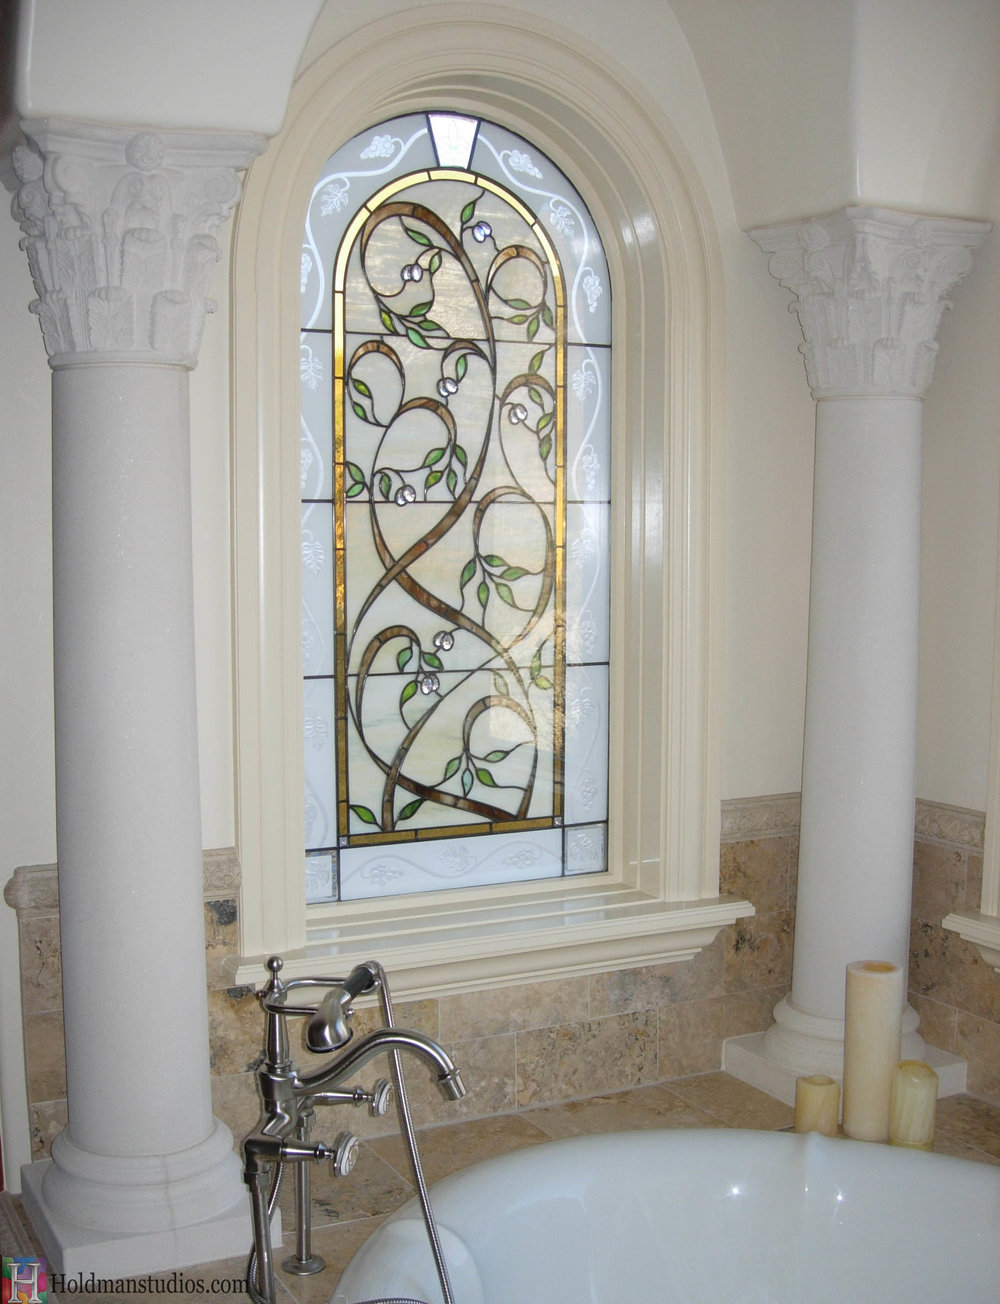 Stained Glass_Noni Mansion bathroom.jpg